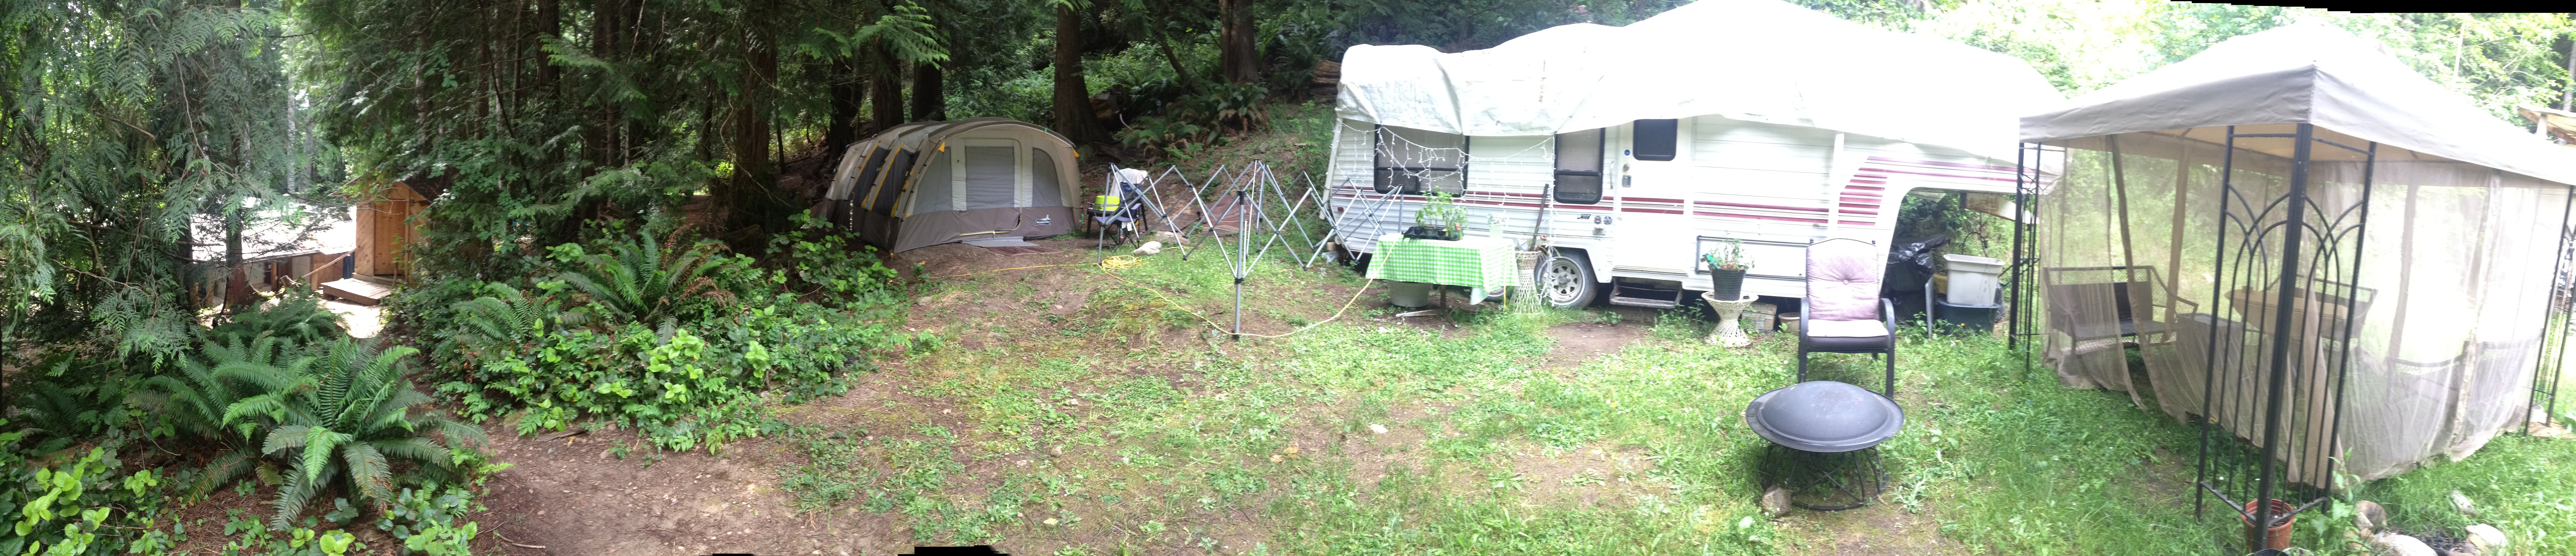 RV AND TENT TRAIL